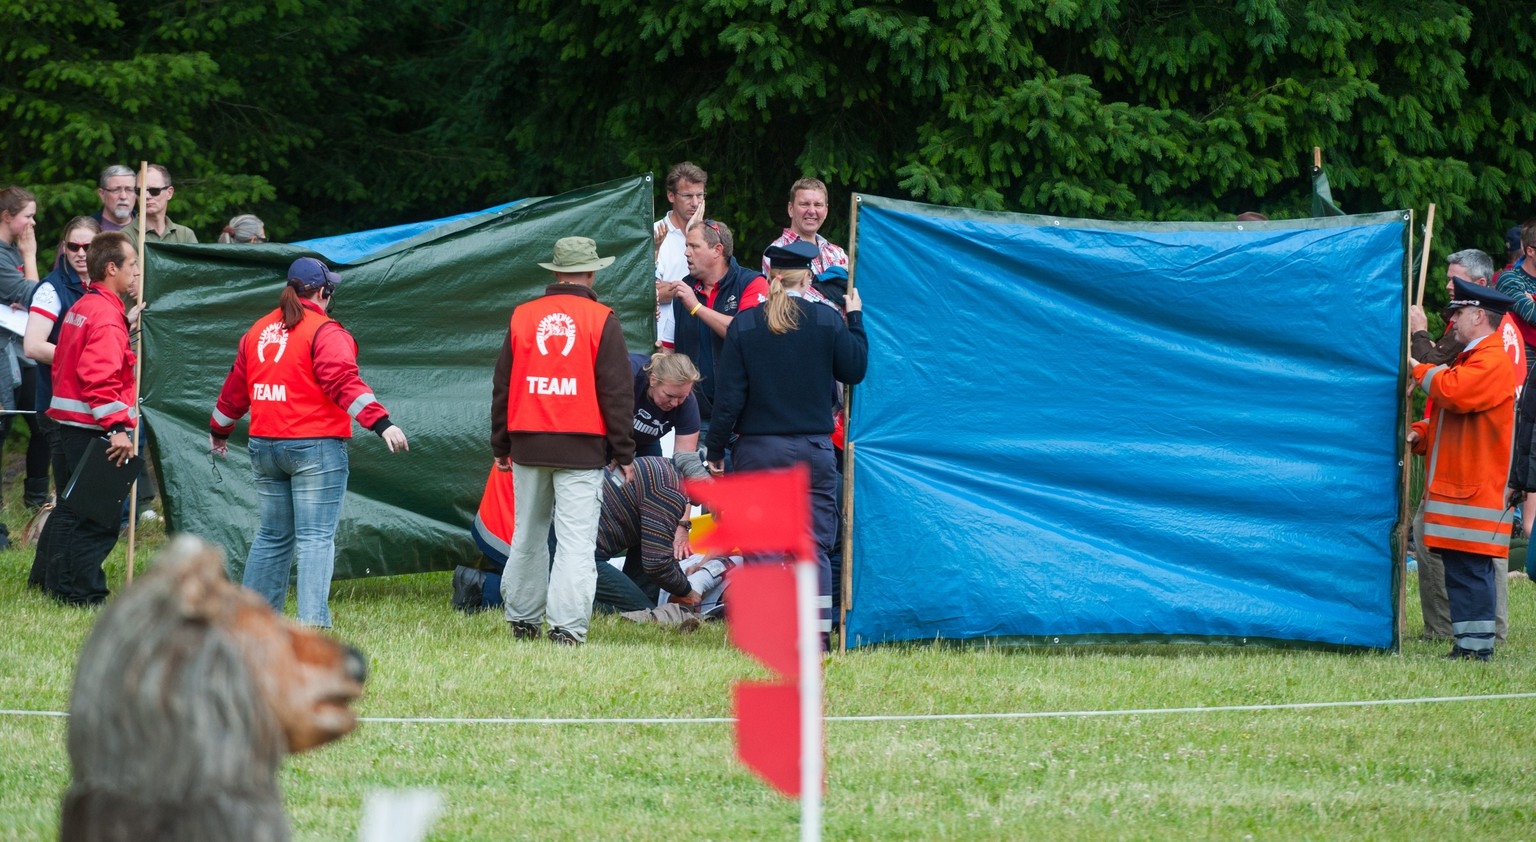 Rescuers apply first aid to German showjumper Benjamin Winter after he fell heavily while clearing an obstacle with his horse Ispo during the Luhmuehlen CCI Horse Trial in Luhmuehlen, Lower Saxony, Germany on June 14, 2014. Winter, aged 25, died on Saturday after suffering head injuries in the three-day eventing competition in Luhmuhlen, organisers announced. AFP PHOTO / DPA / PHILIPP SCHULZE +++ GERMANY OUT